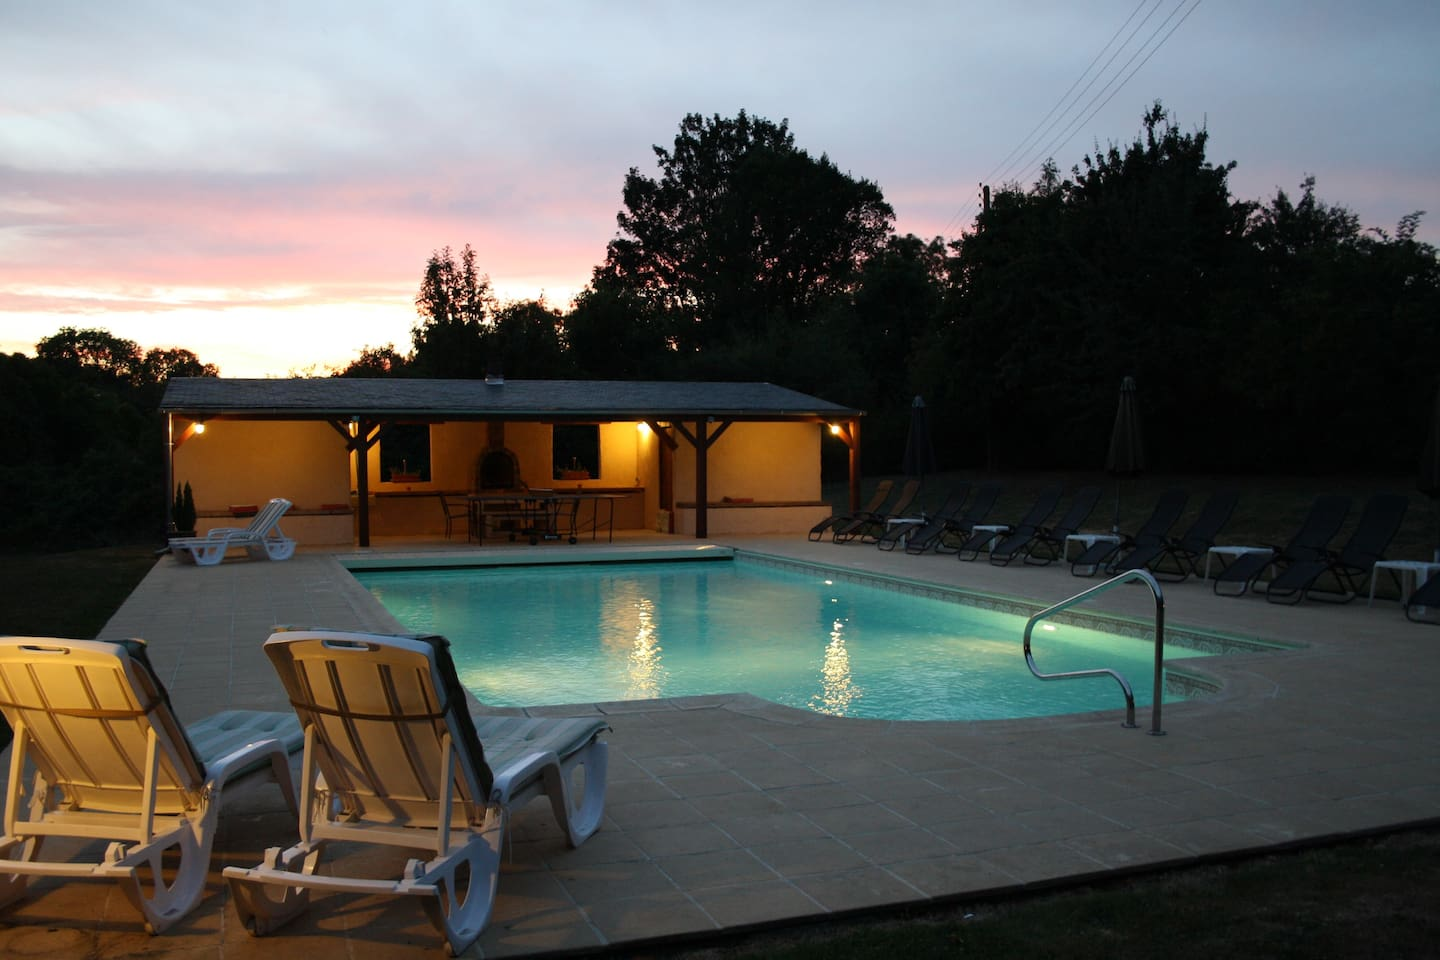 Poolhouse at night